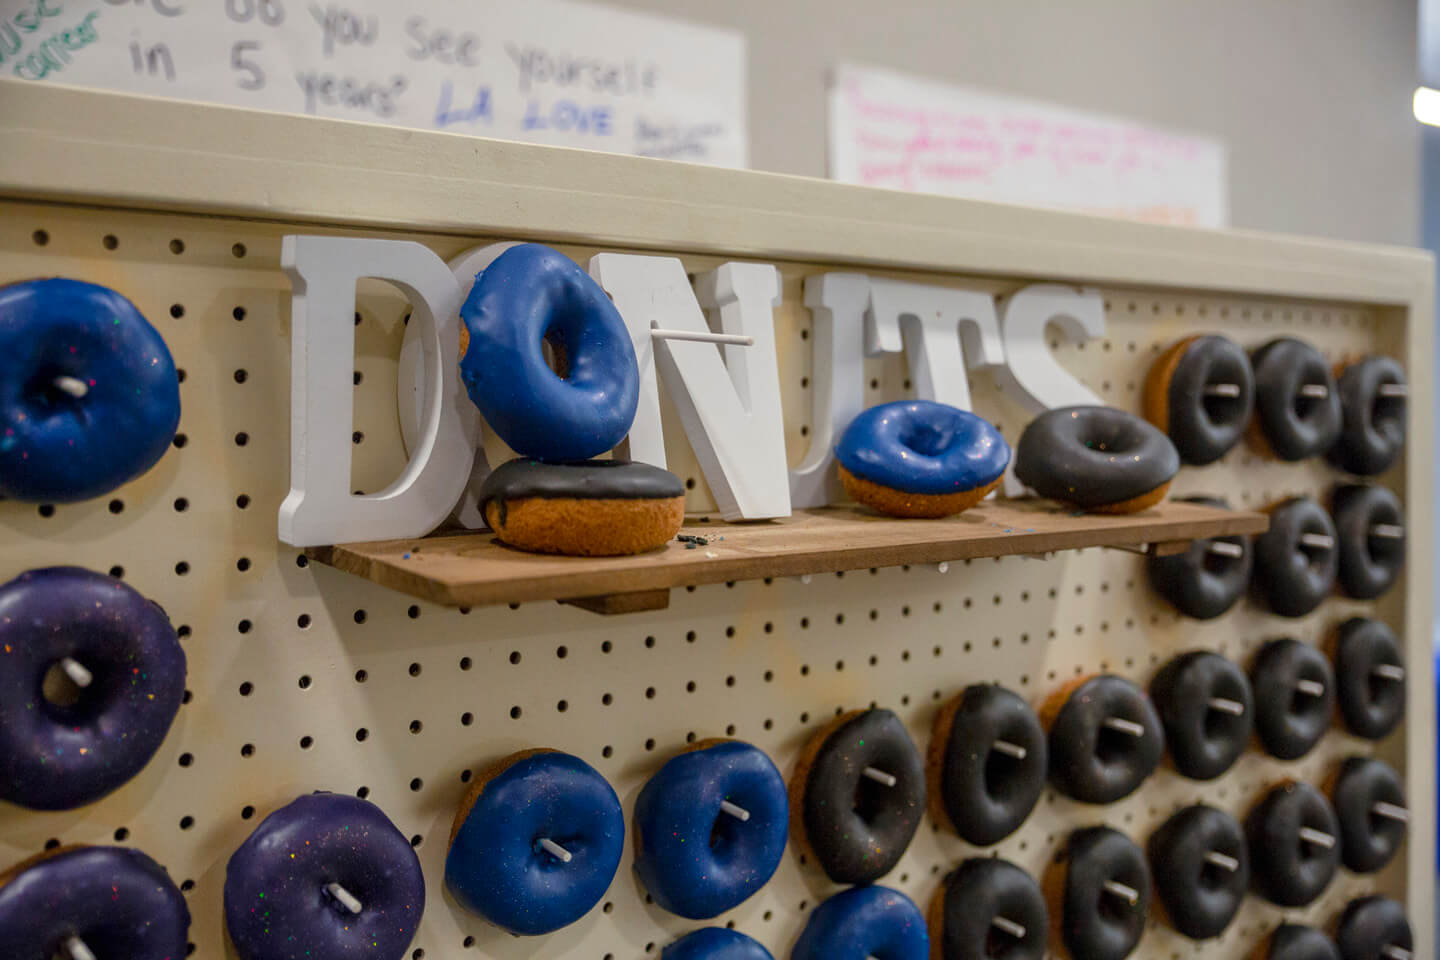 5-donut-wall-glam-doll-donuts